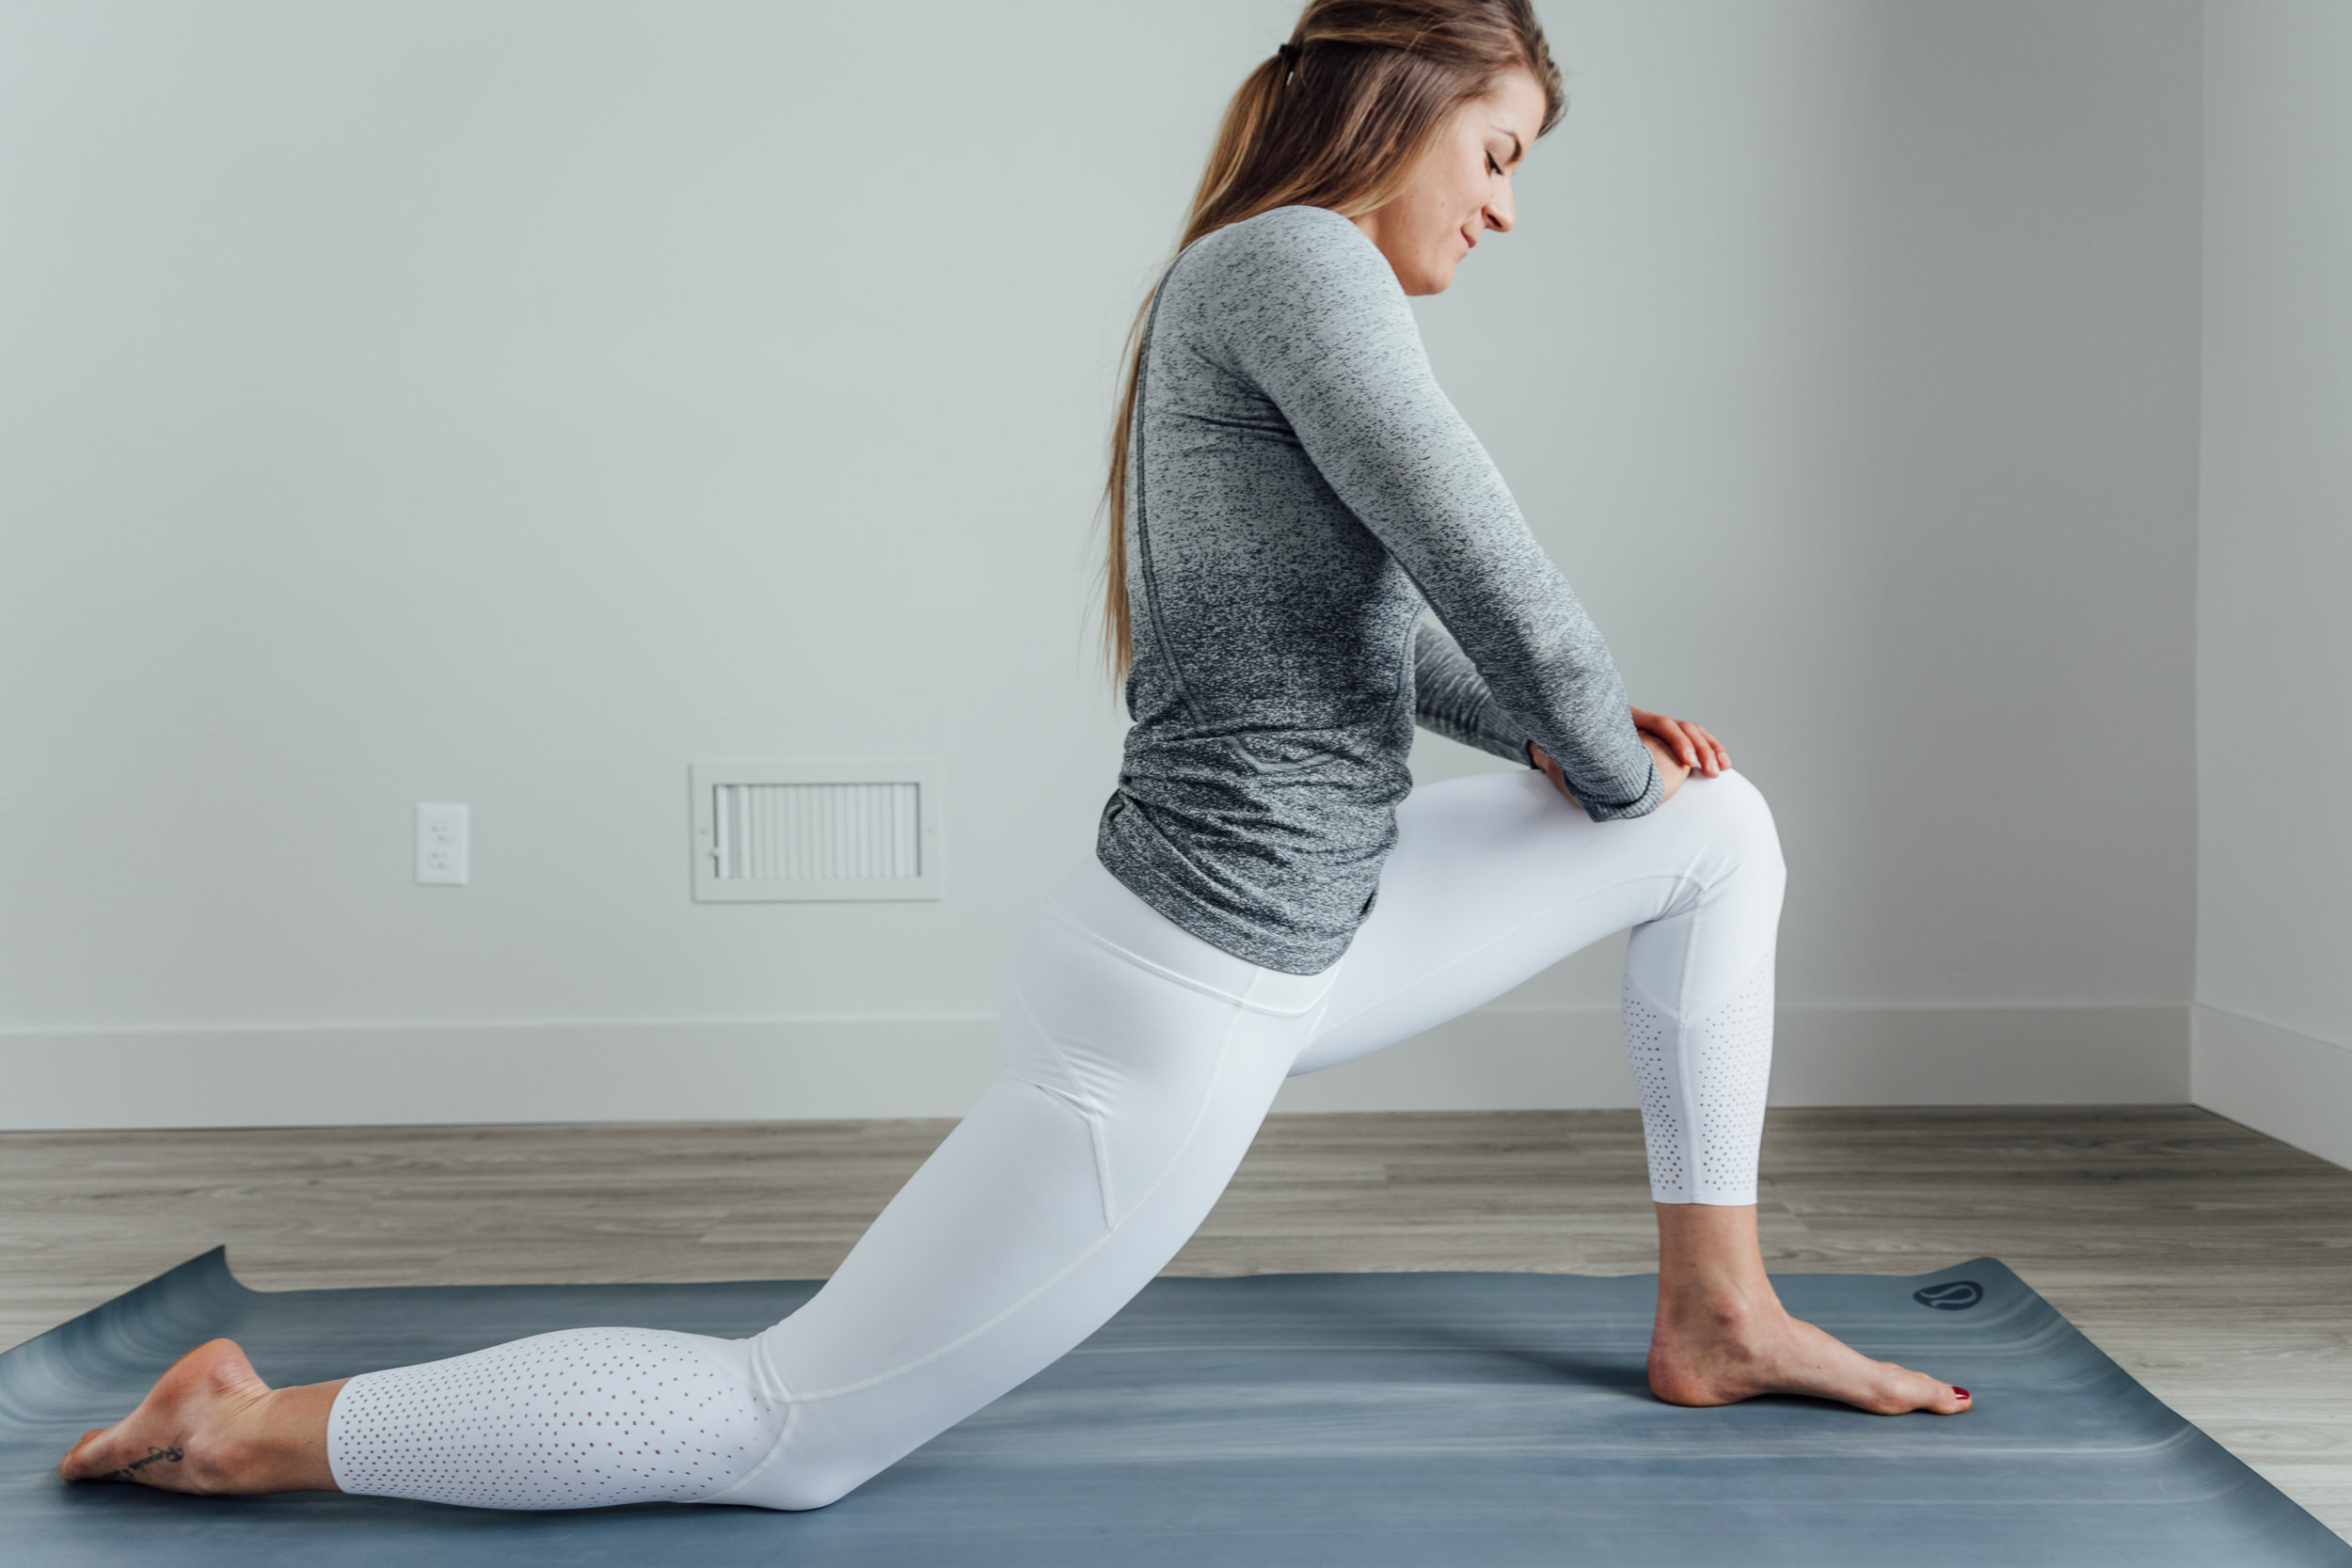 stretches for skiing and stretched for flexibility